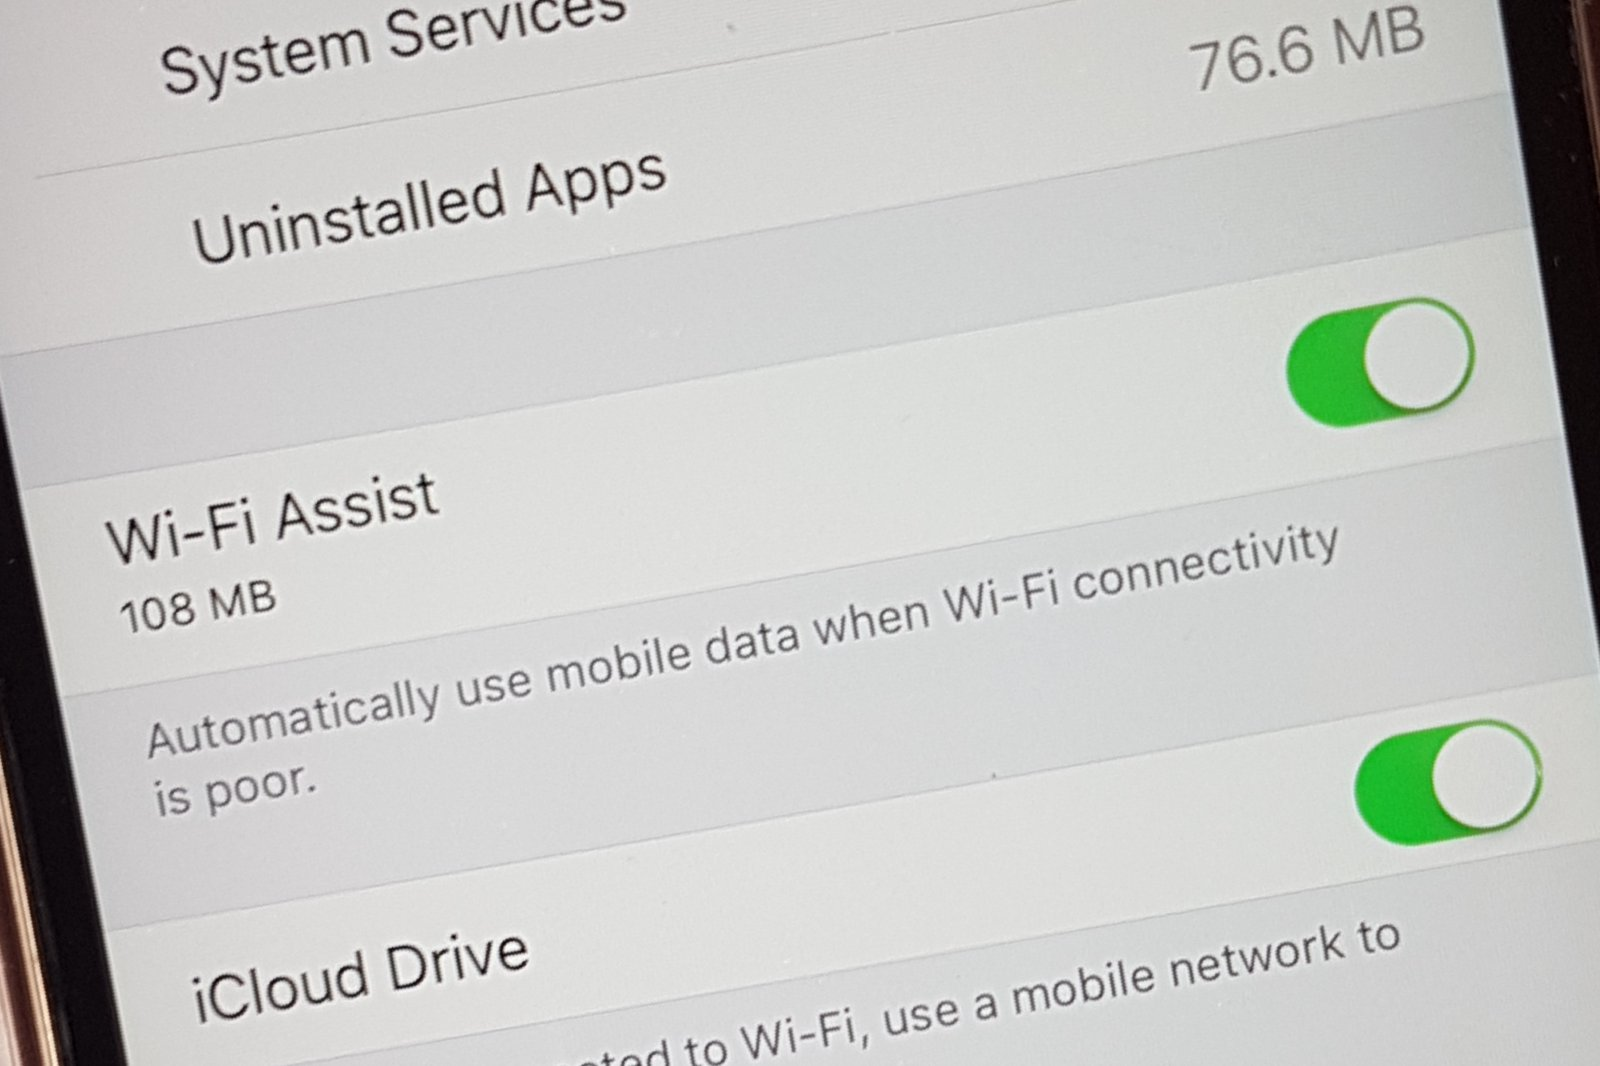 iPhone users: Beware Wi-Fi Assist!